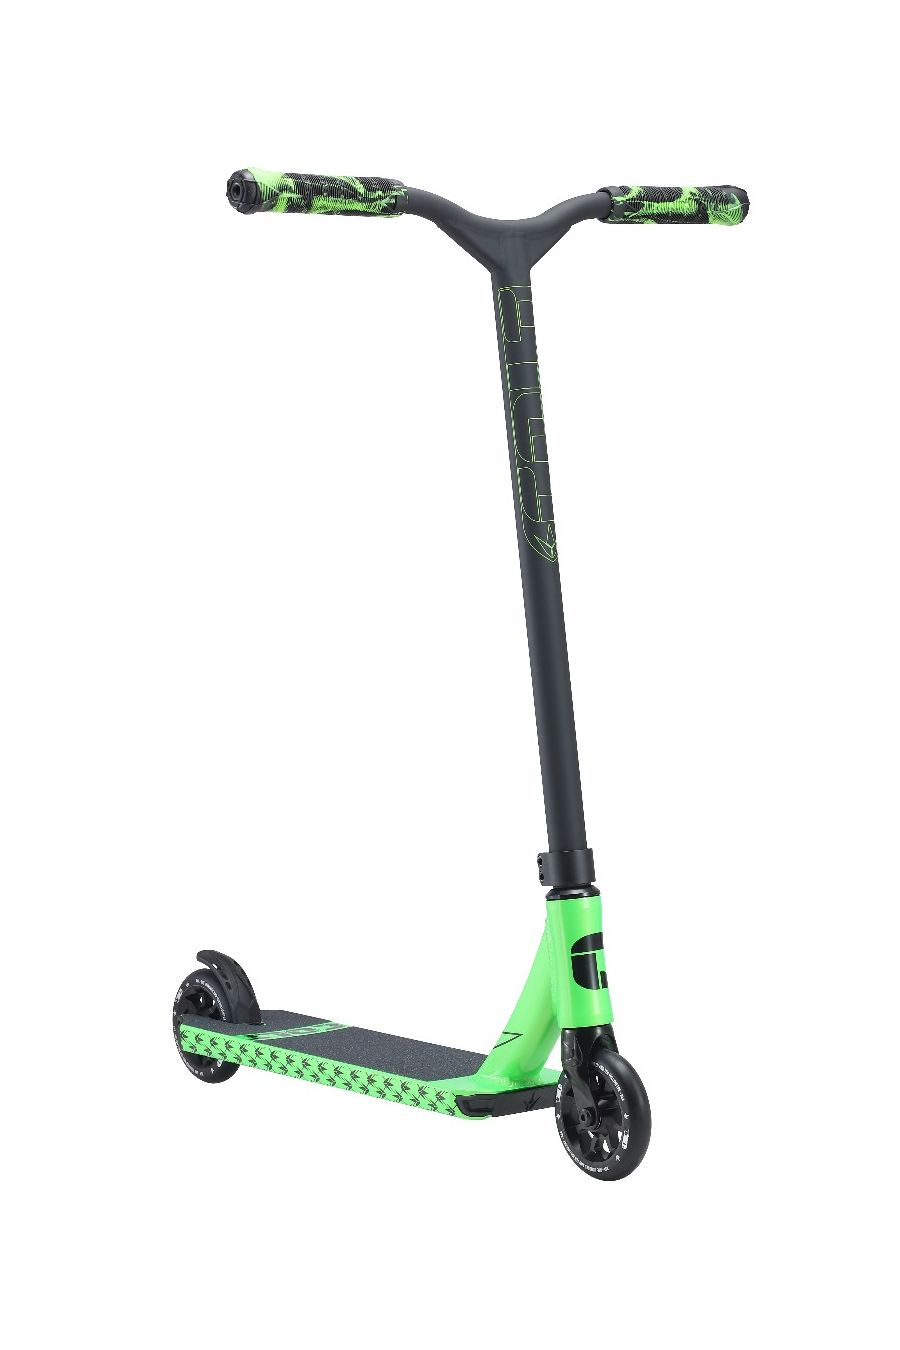 Envy Colt S4 Complete Scooter (Green)